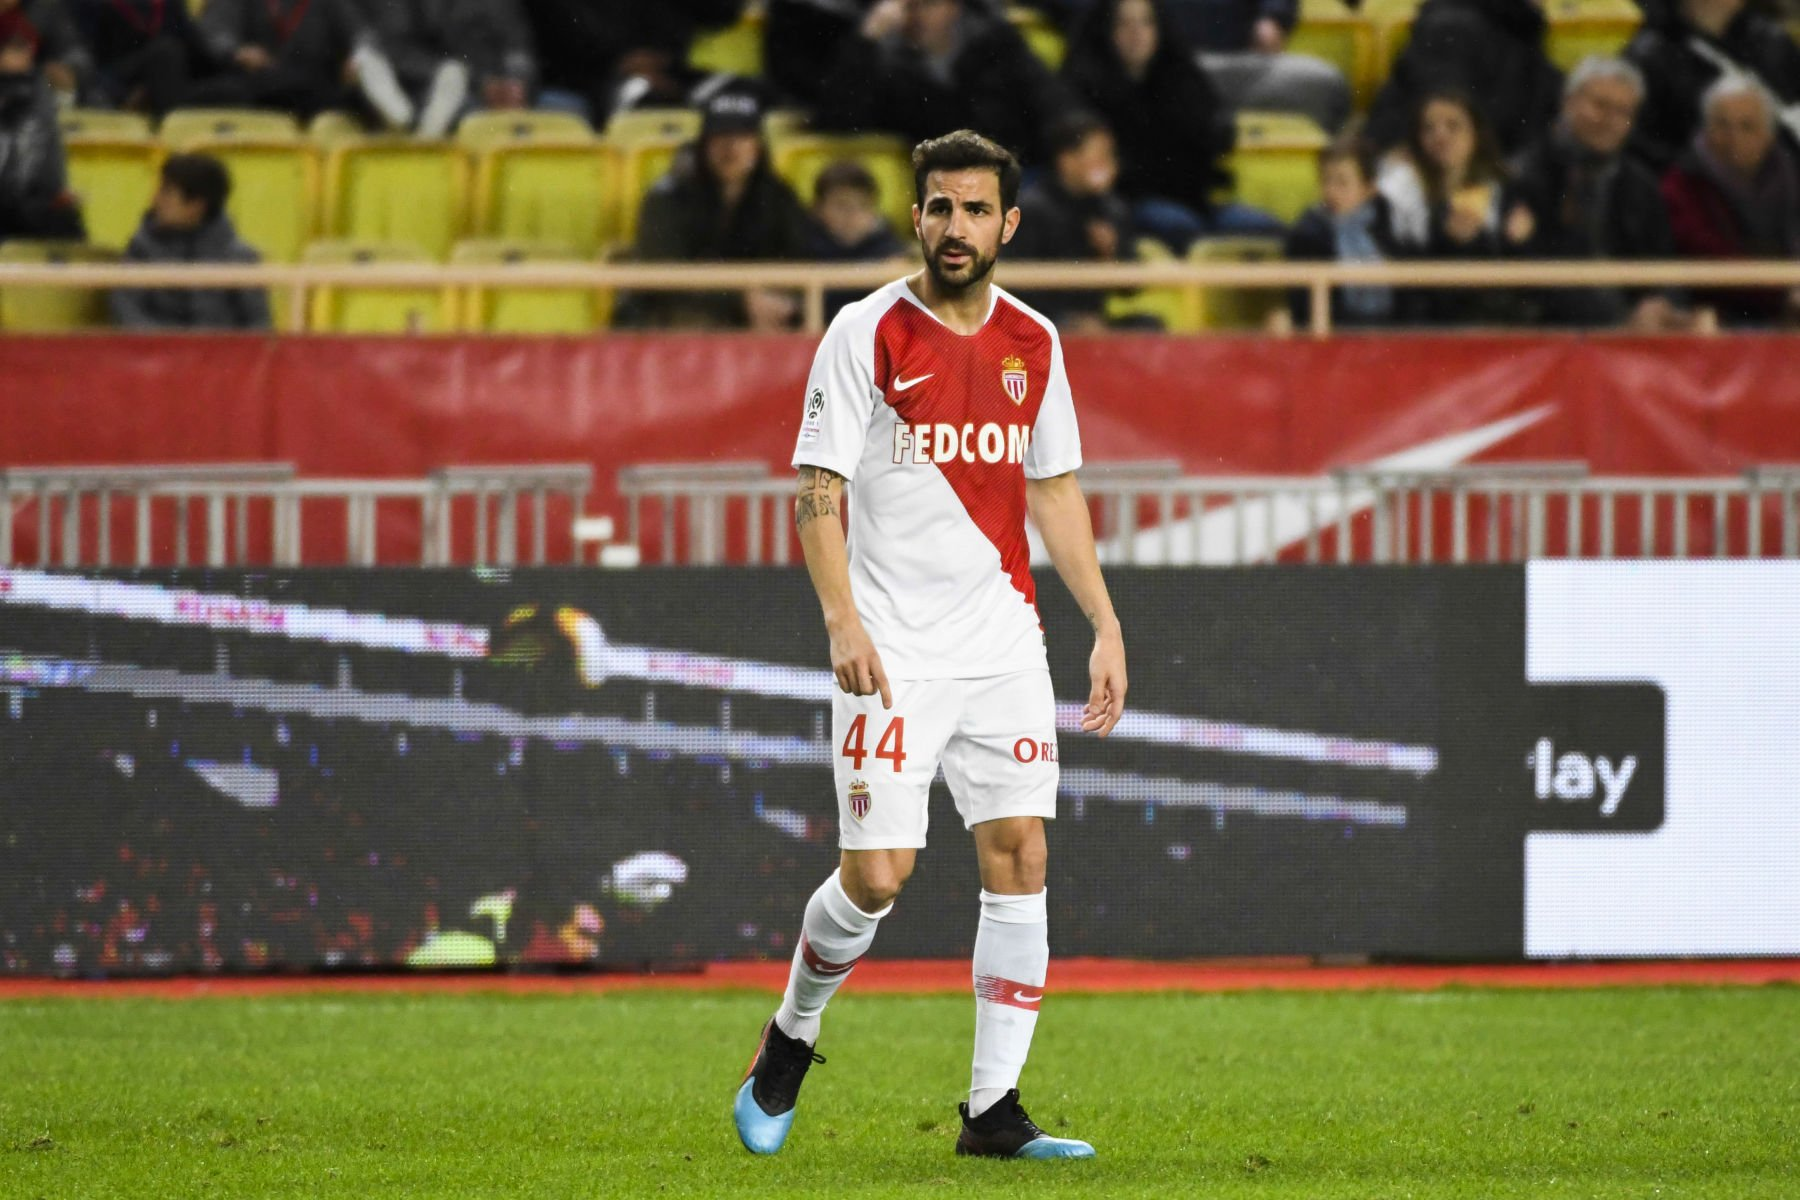 Cesc Fabregas of Monaco during the Ligue 1 match between Monaco and Strasbourg at Stade Louis II on January 19, 2019 in Monaco, Monaco. (Photo by Pascal Della Zuana/Icon Sport) FOT. ICON SPORT / NEWSPIX.PL POLAND ONLY !!! --- Newspix.pl *** Local Caption *** www.newspix.pl mail us: info@newspix.pl call us: 0048 022 23 22 222 --- Polish Picture Agency by Ringier Axel Springer Poland